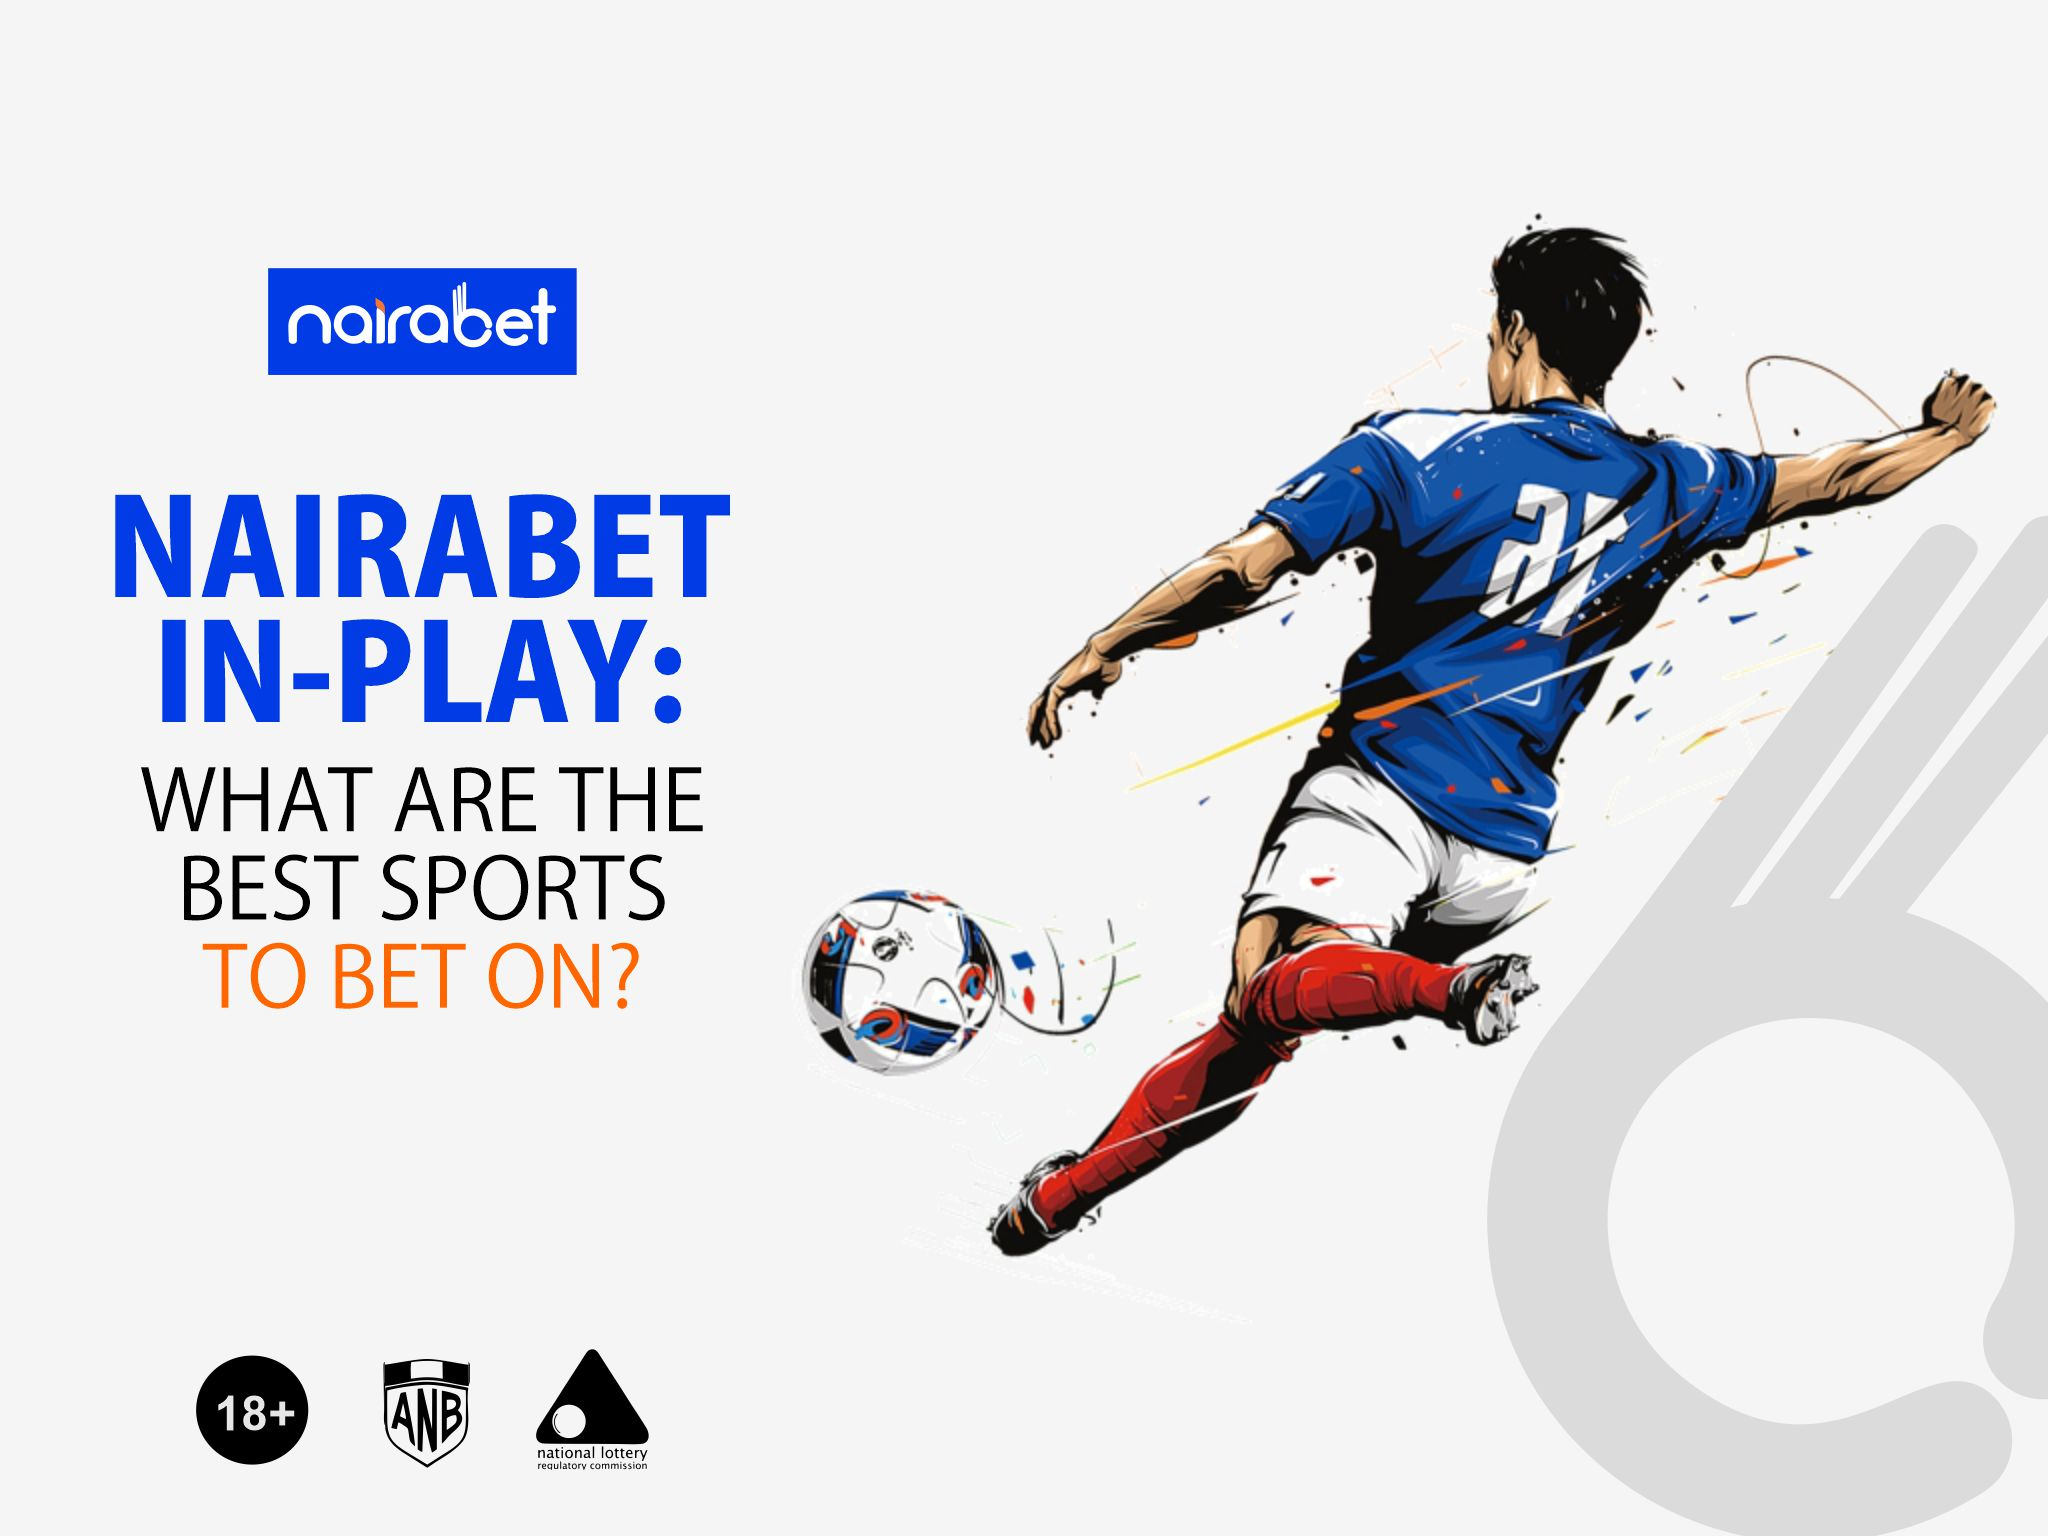 football betting sites that accept nairabet